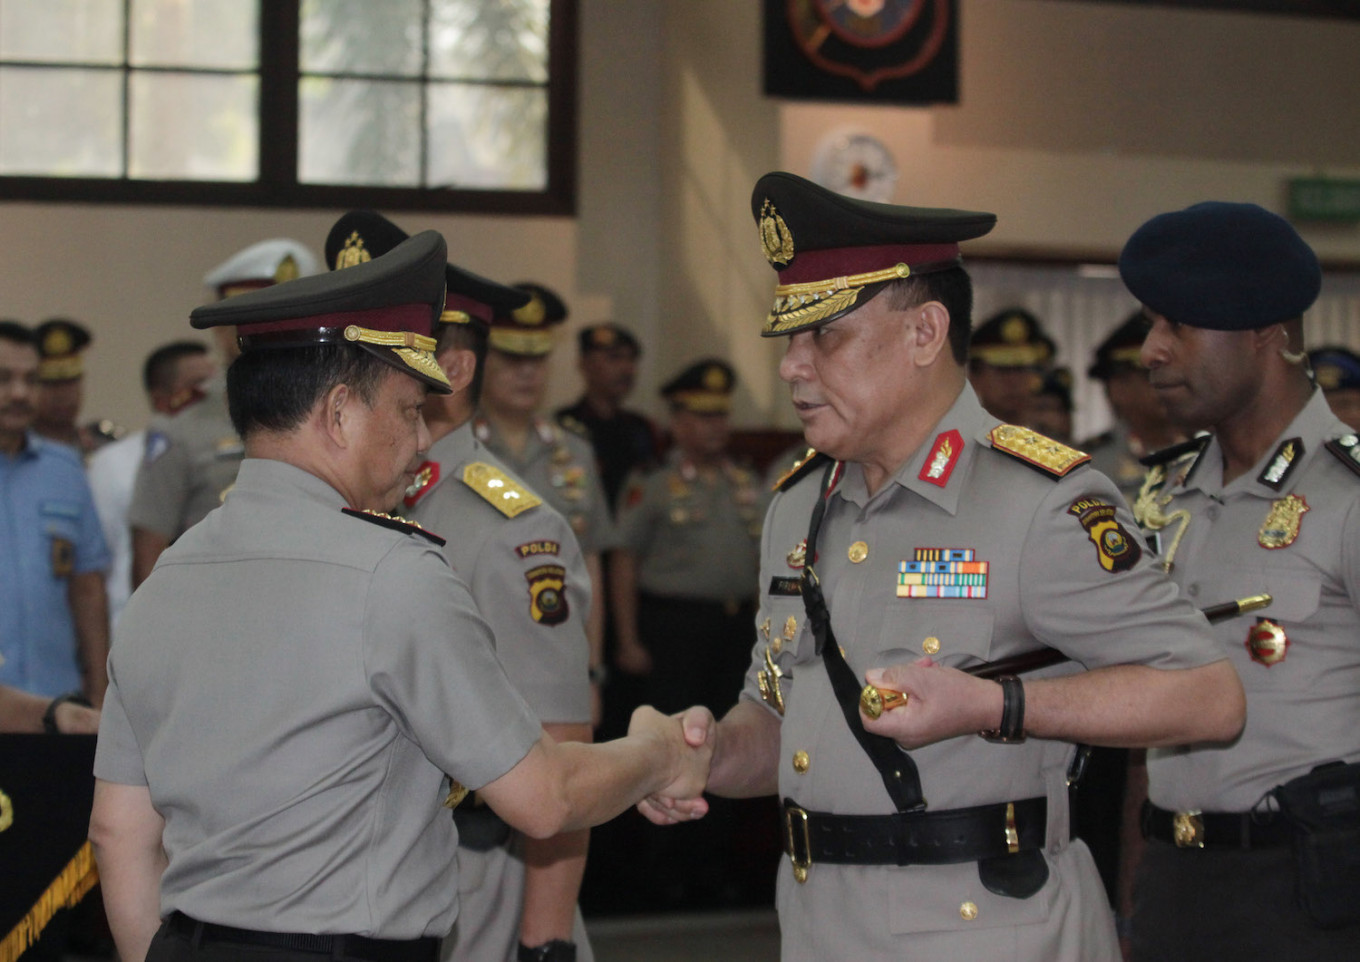 Insp. Gen. Firli promoted to South Sumatra Police chief despite ongoing KPK ethics probe